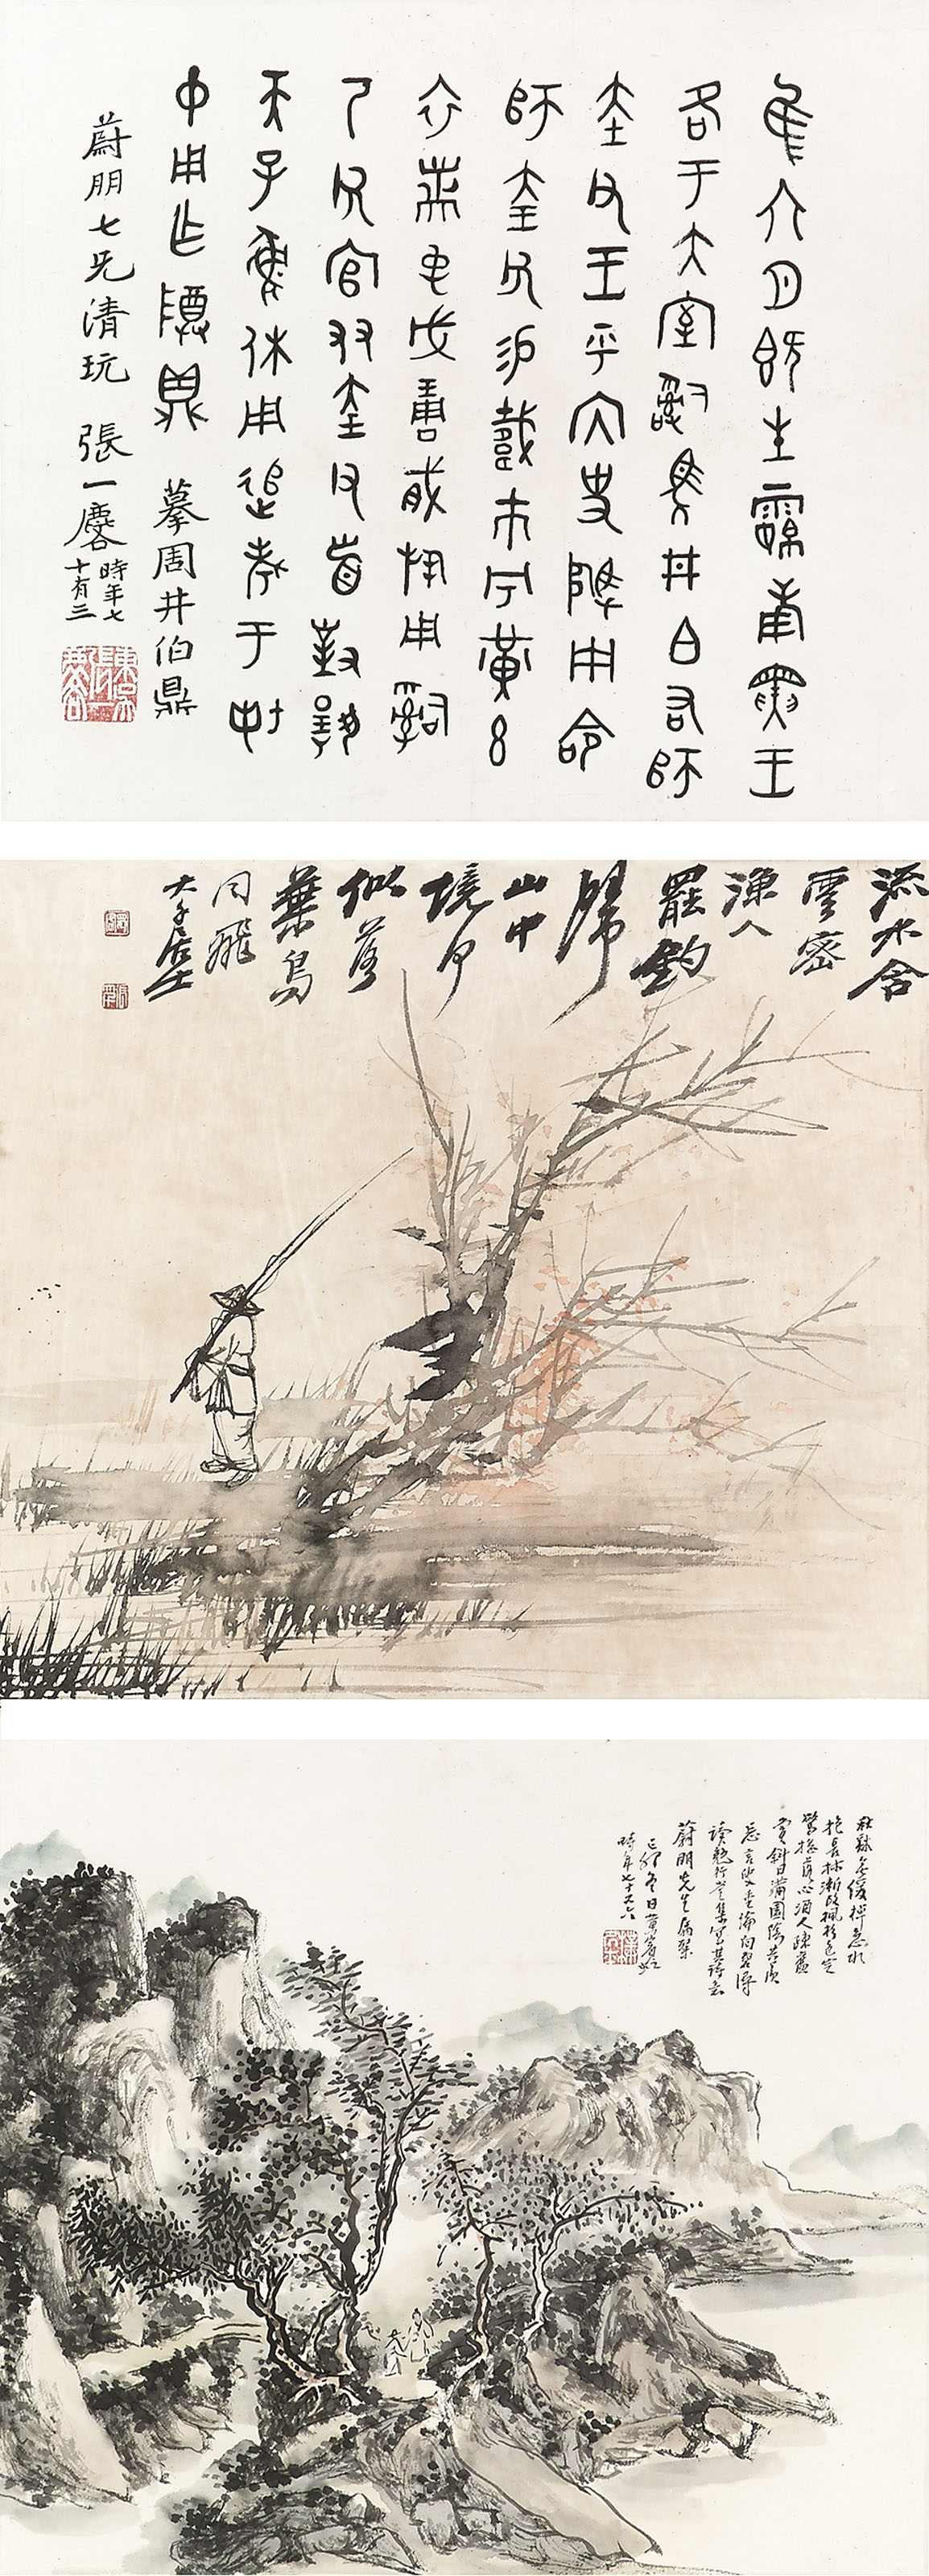 Landscapes, Figures and Calligraphy